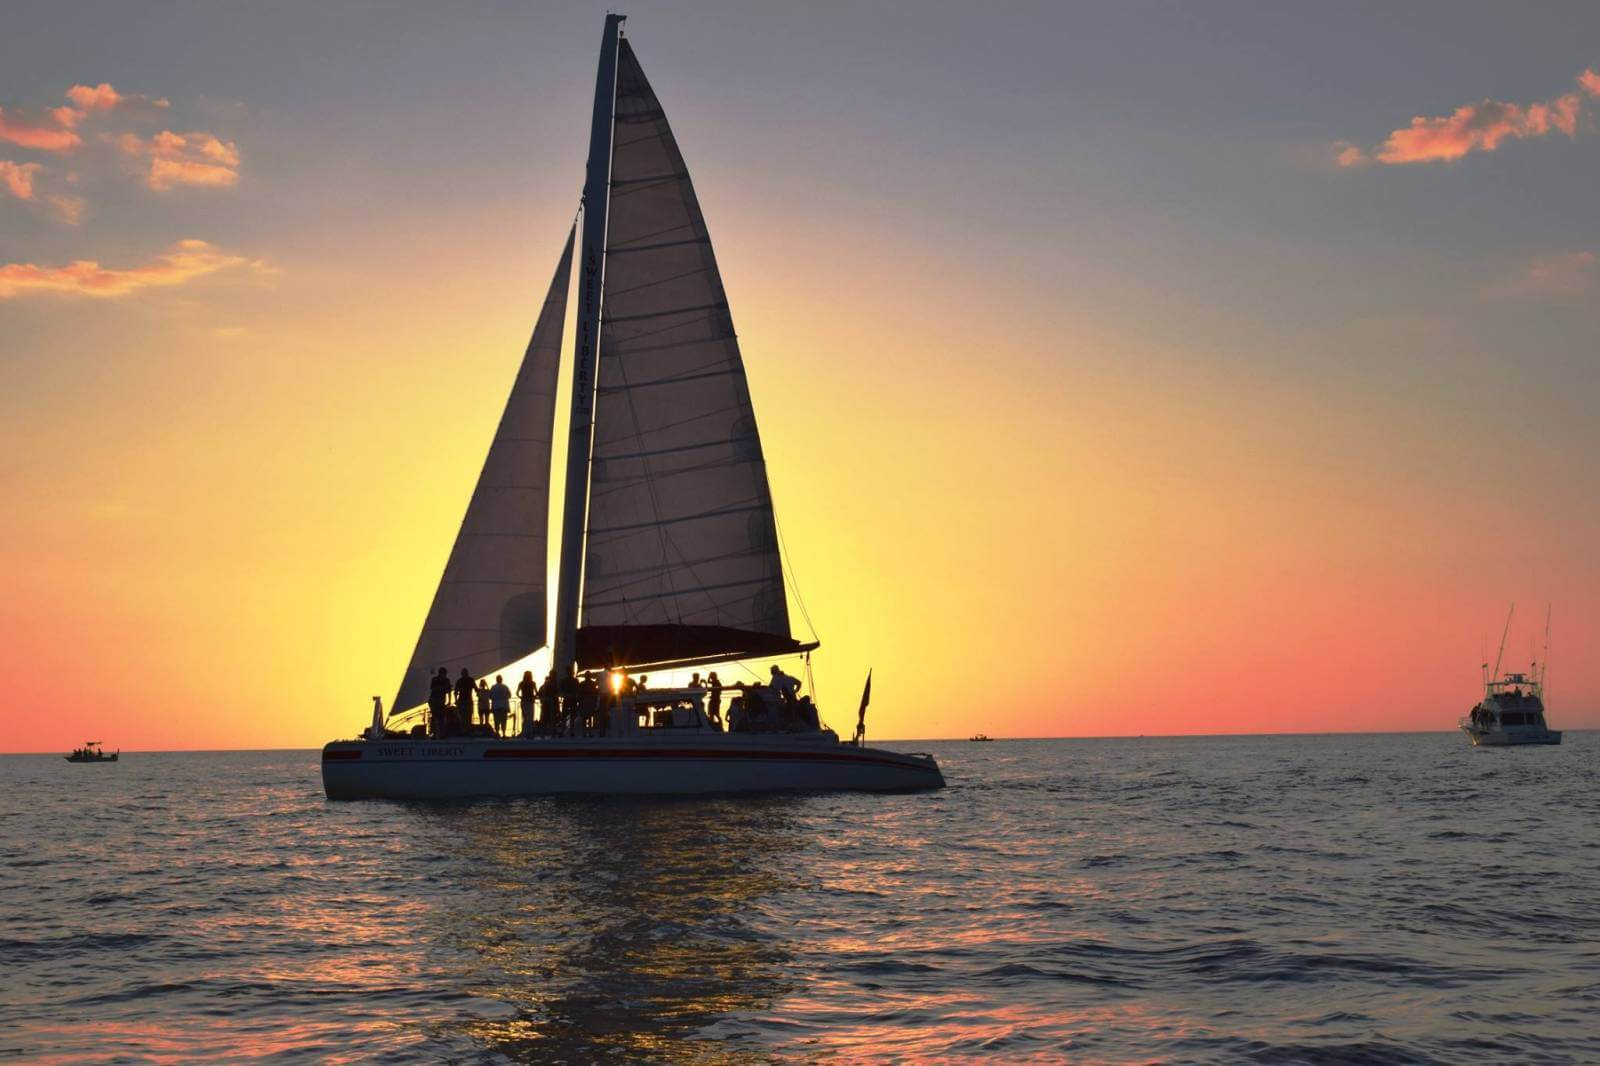 Sweet Liberty Sailing catamaran Naples, Florida sunset cruise.